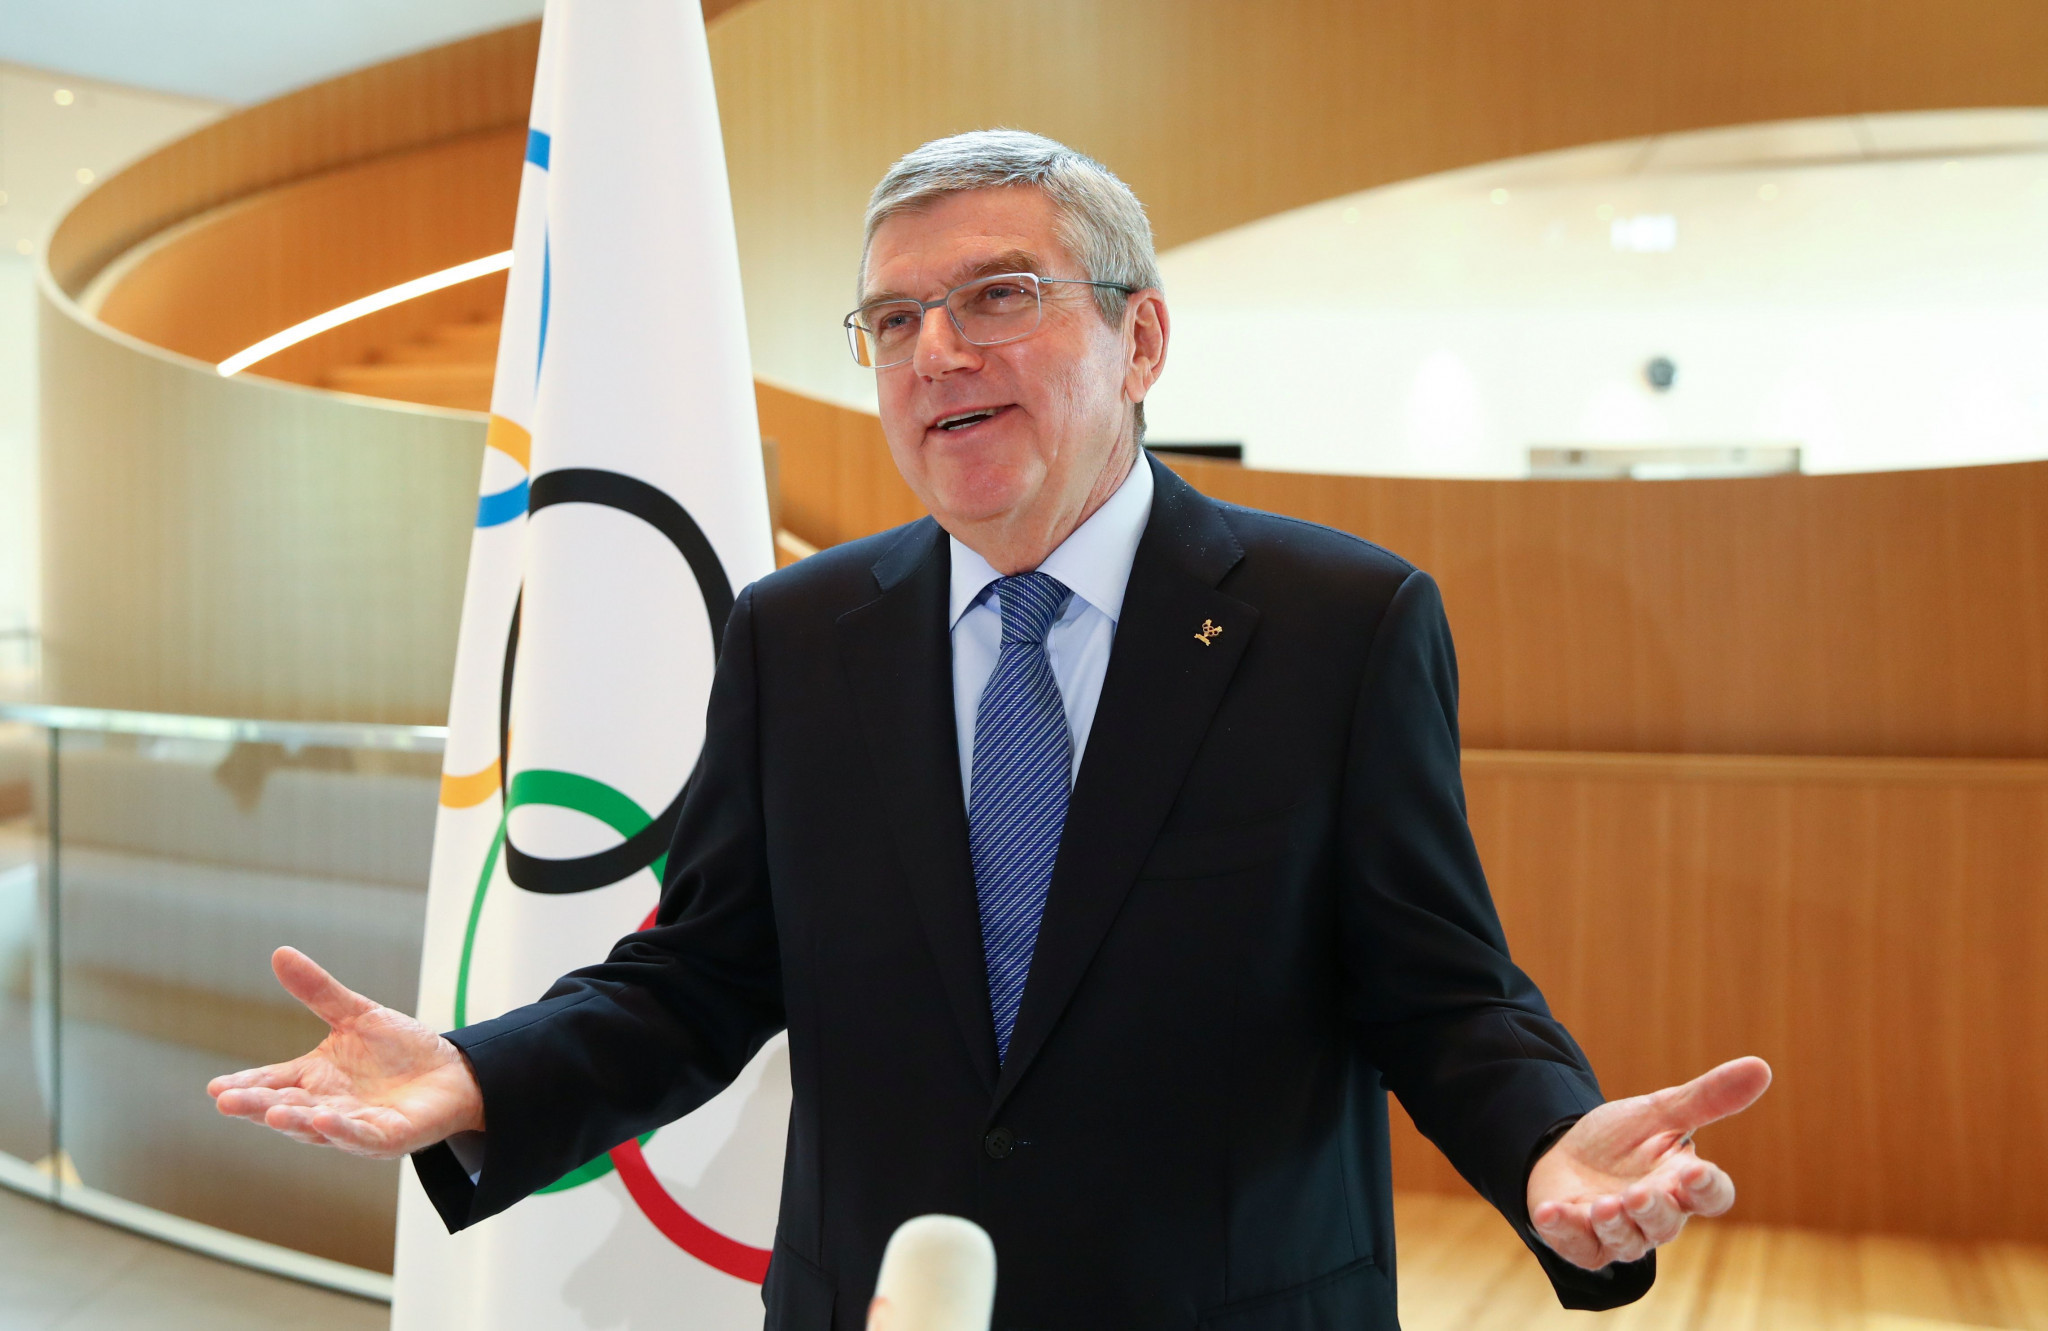 """Olympics should be about unity and not """"a marketplace of demonstrations"""", Bach implores"""